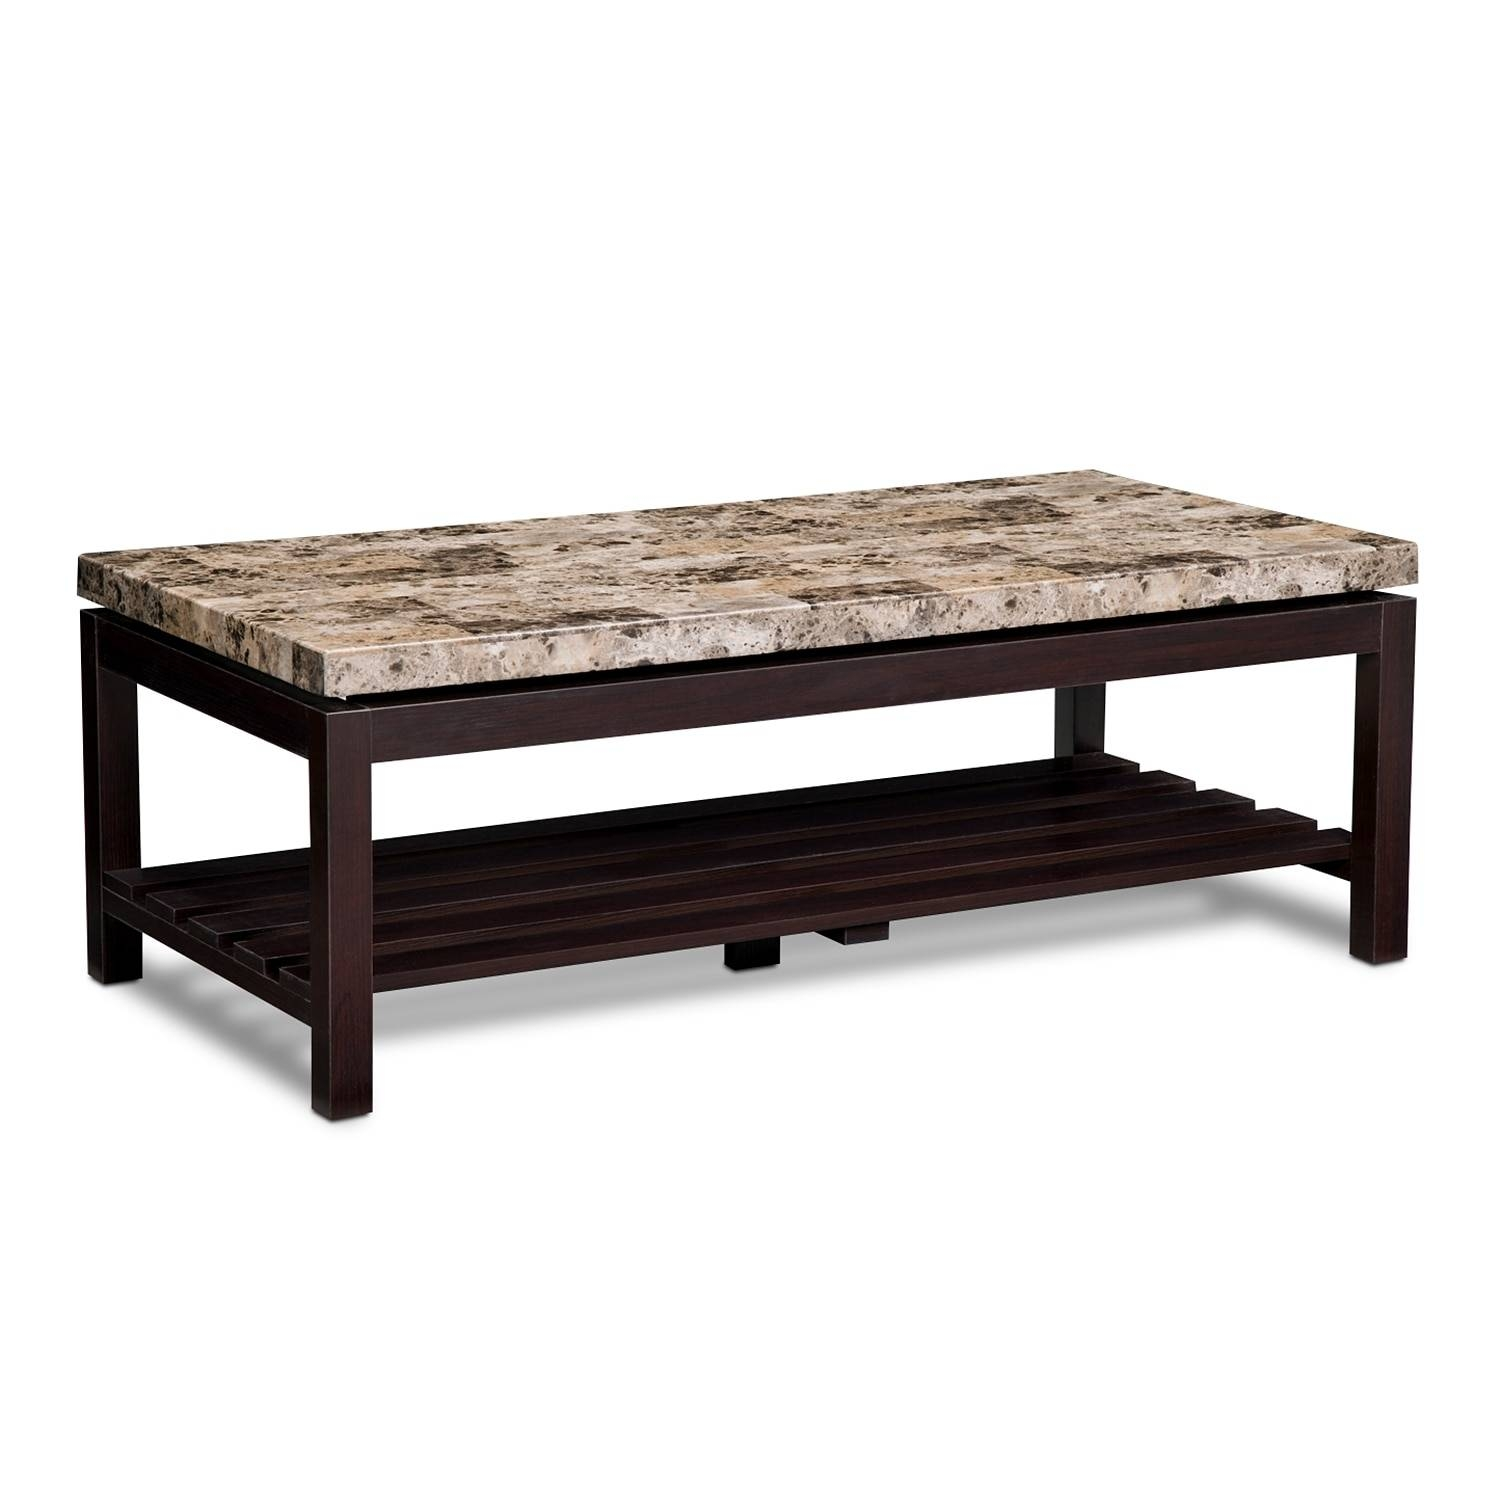 Audra Cocktail Table - Merlot | Value City Furniture intended for Monterey Coffee Tables (Image 3 of 30)